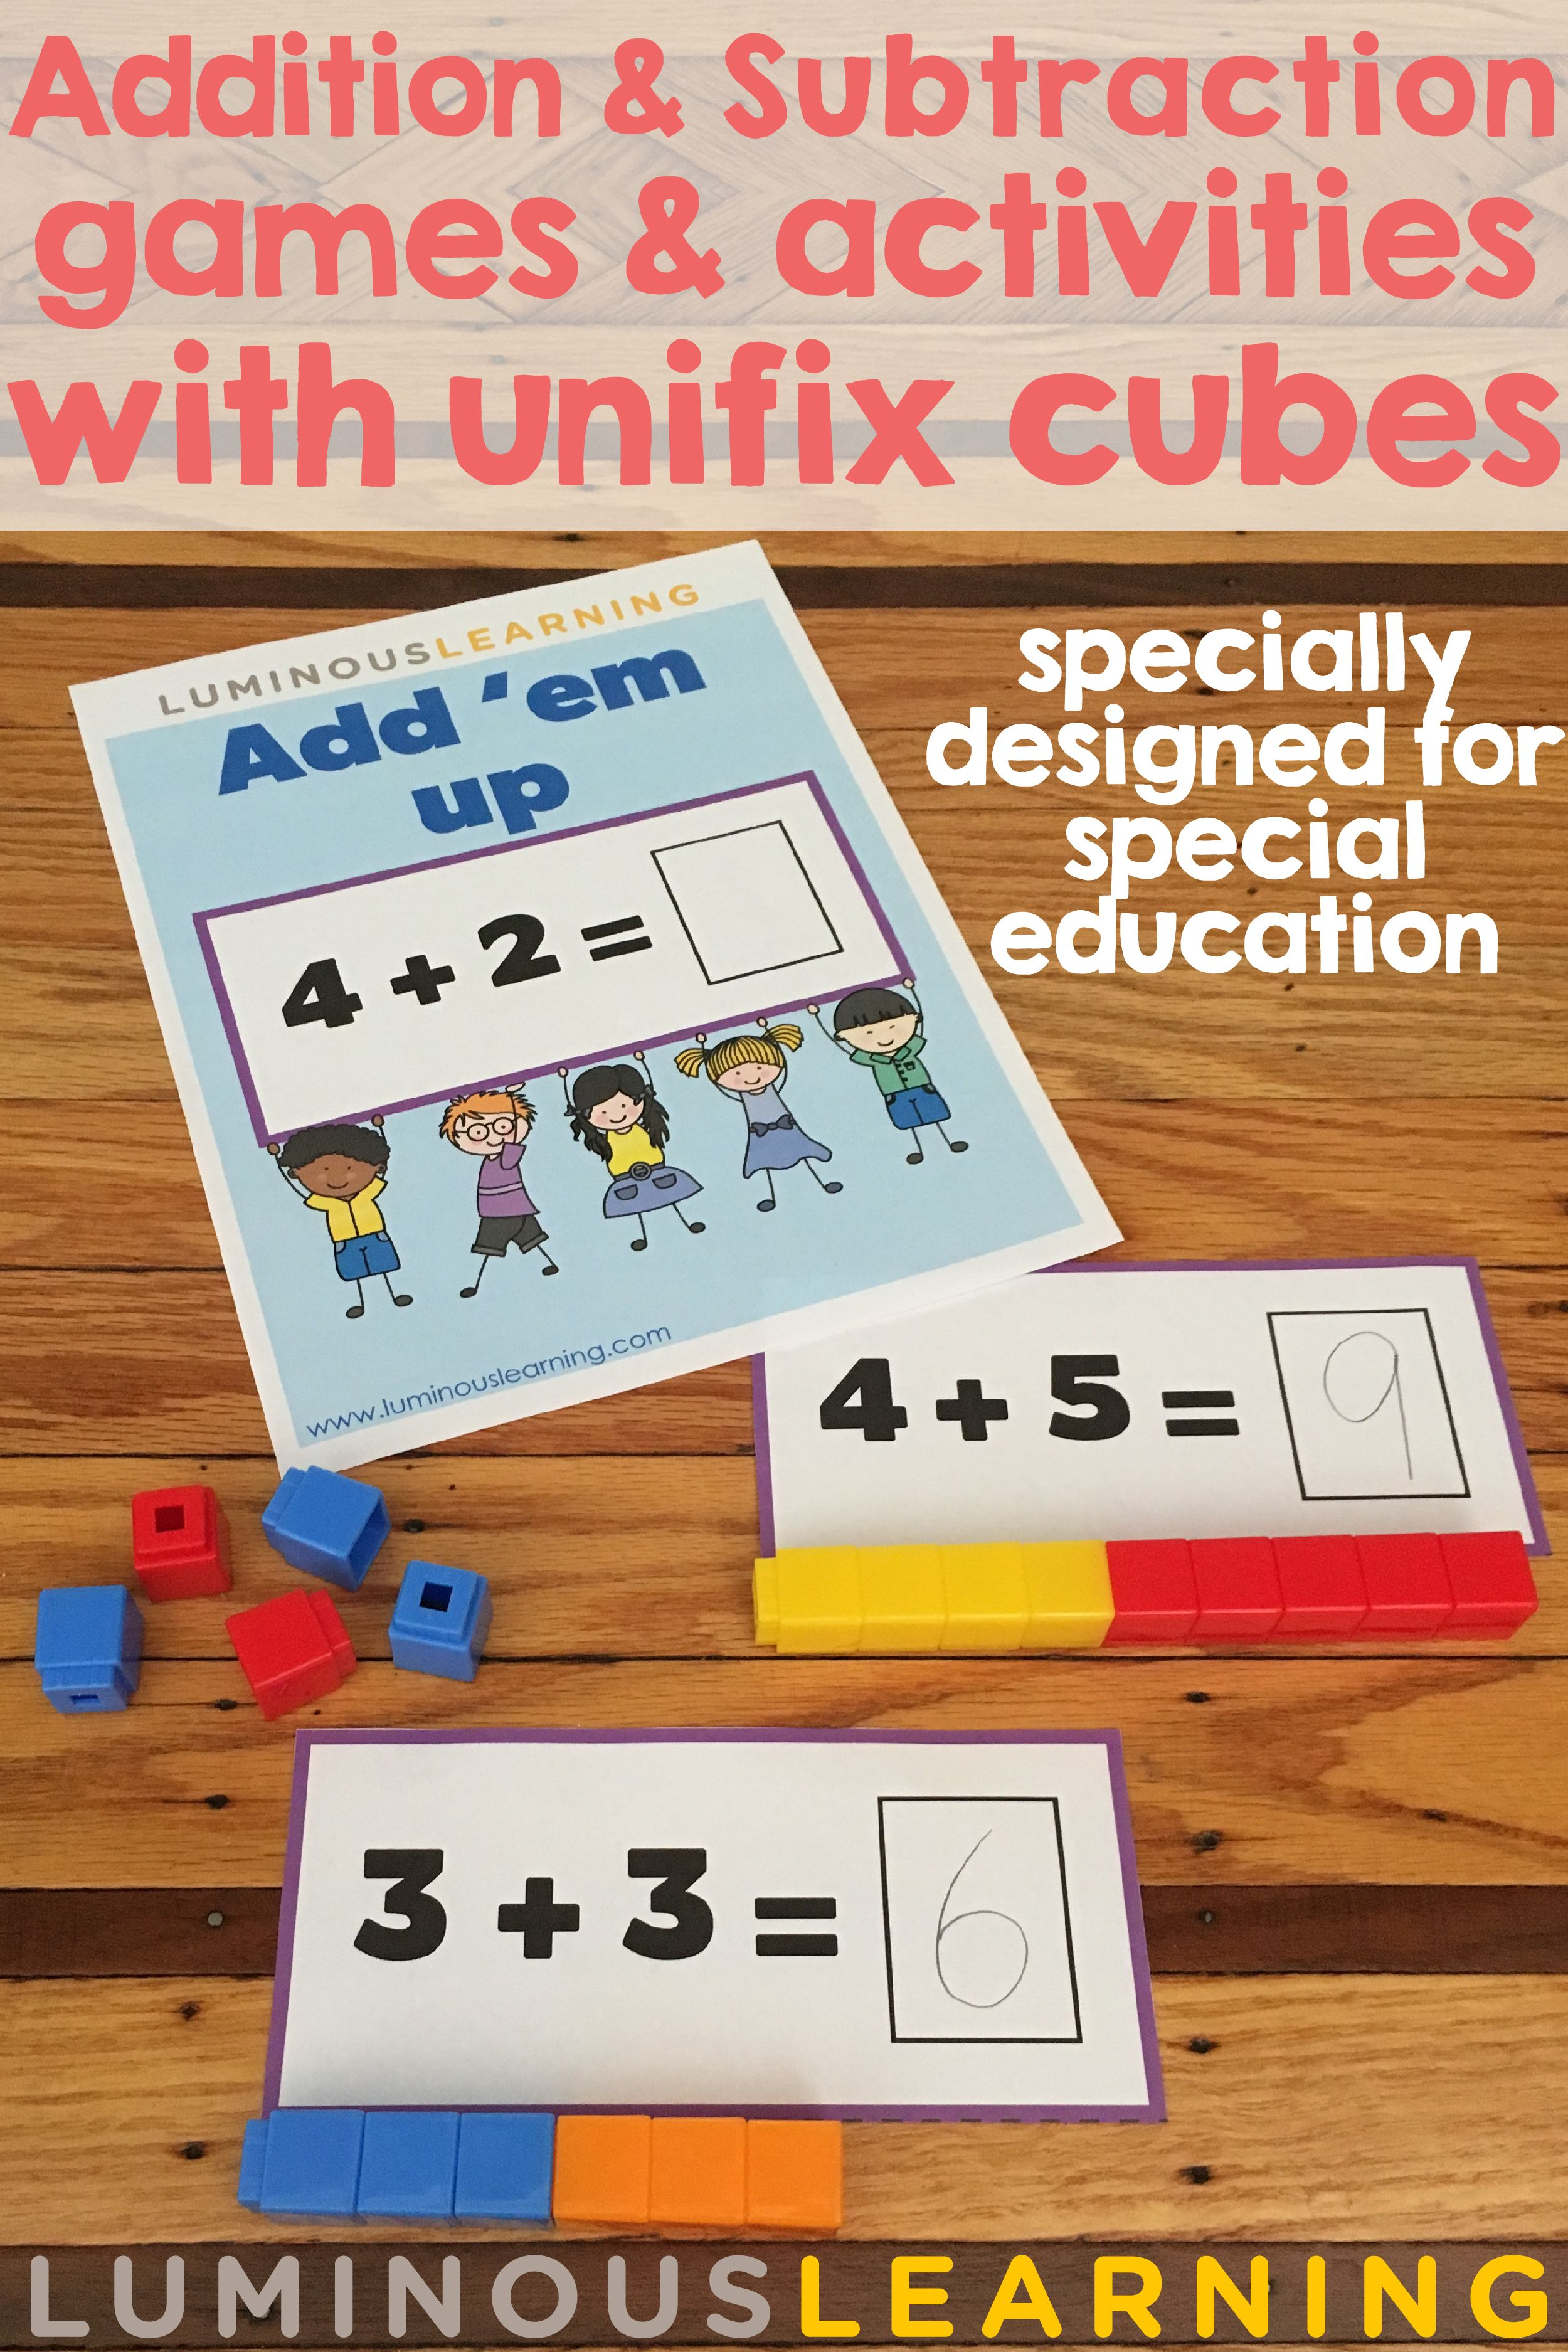 Addition And Subtraction Games With Unifix Cubes Designed With Supports For Special Education